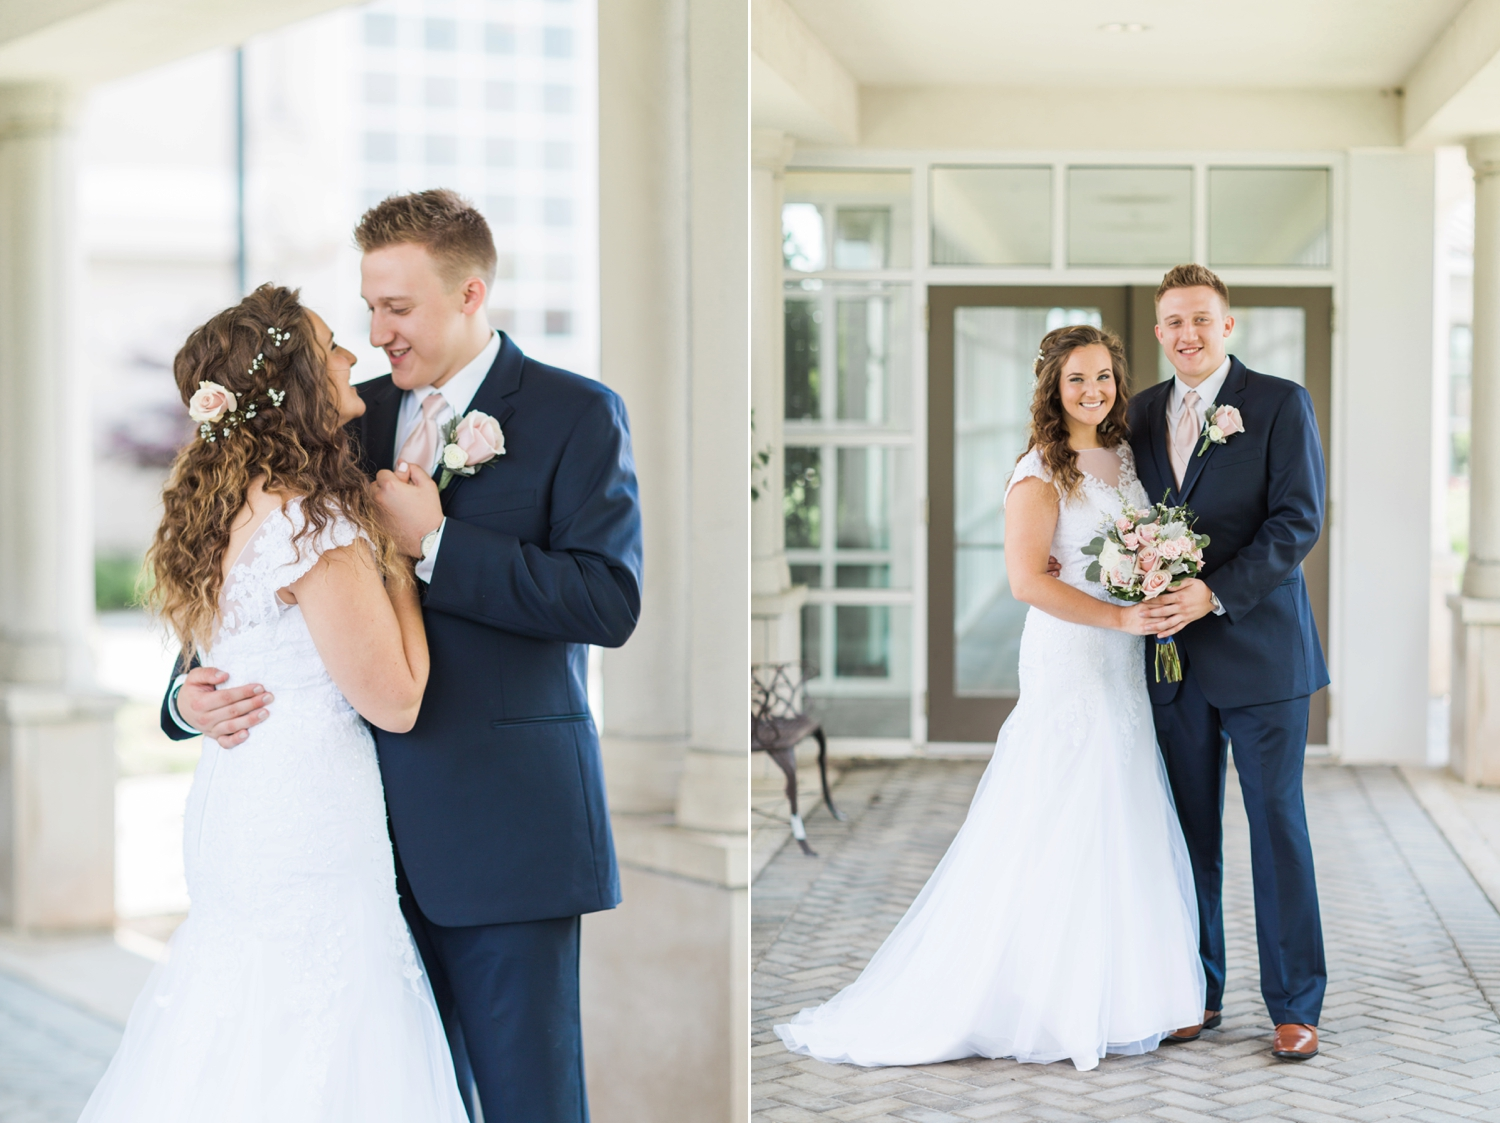 Community_Life_Center_Indianapolis_Indiana_Wedding_Photographer_Chloe_Luka_Photography_6867.jpg